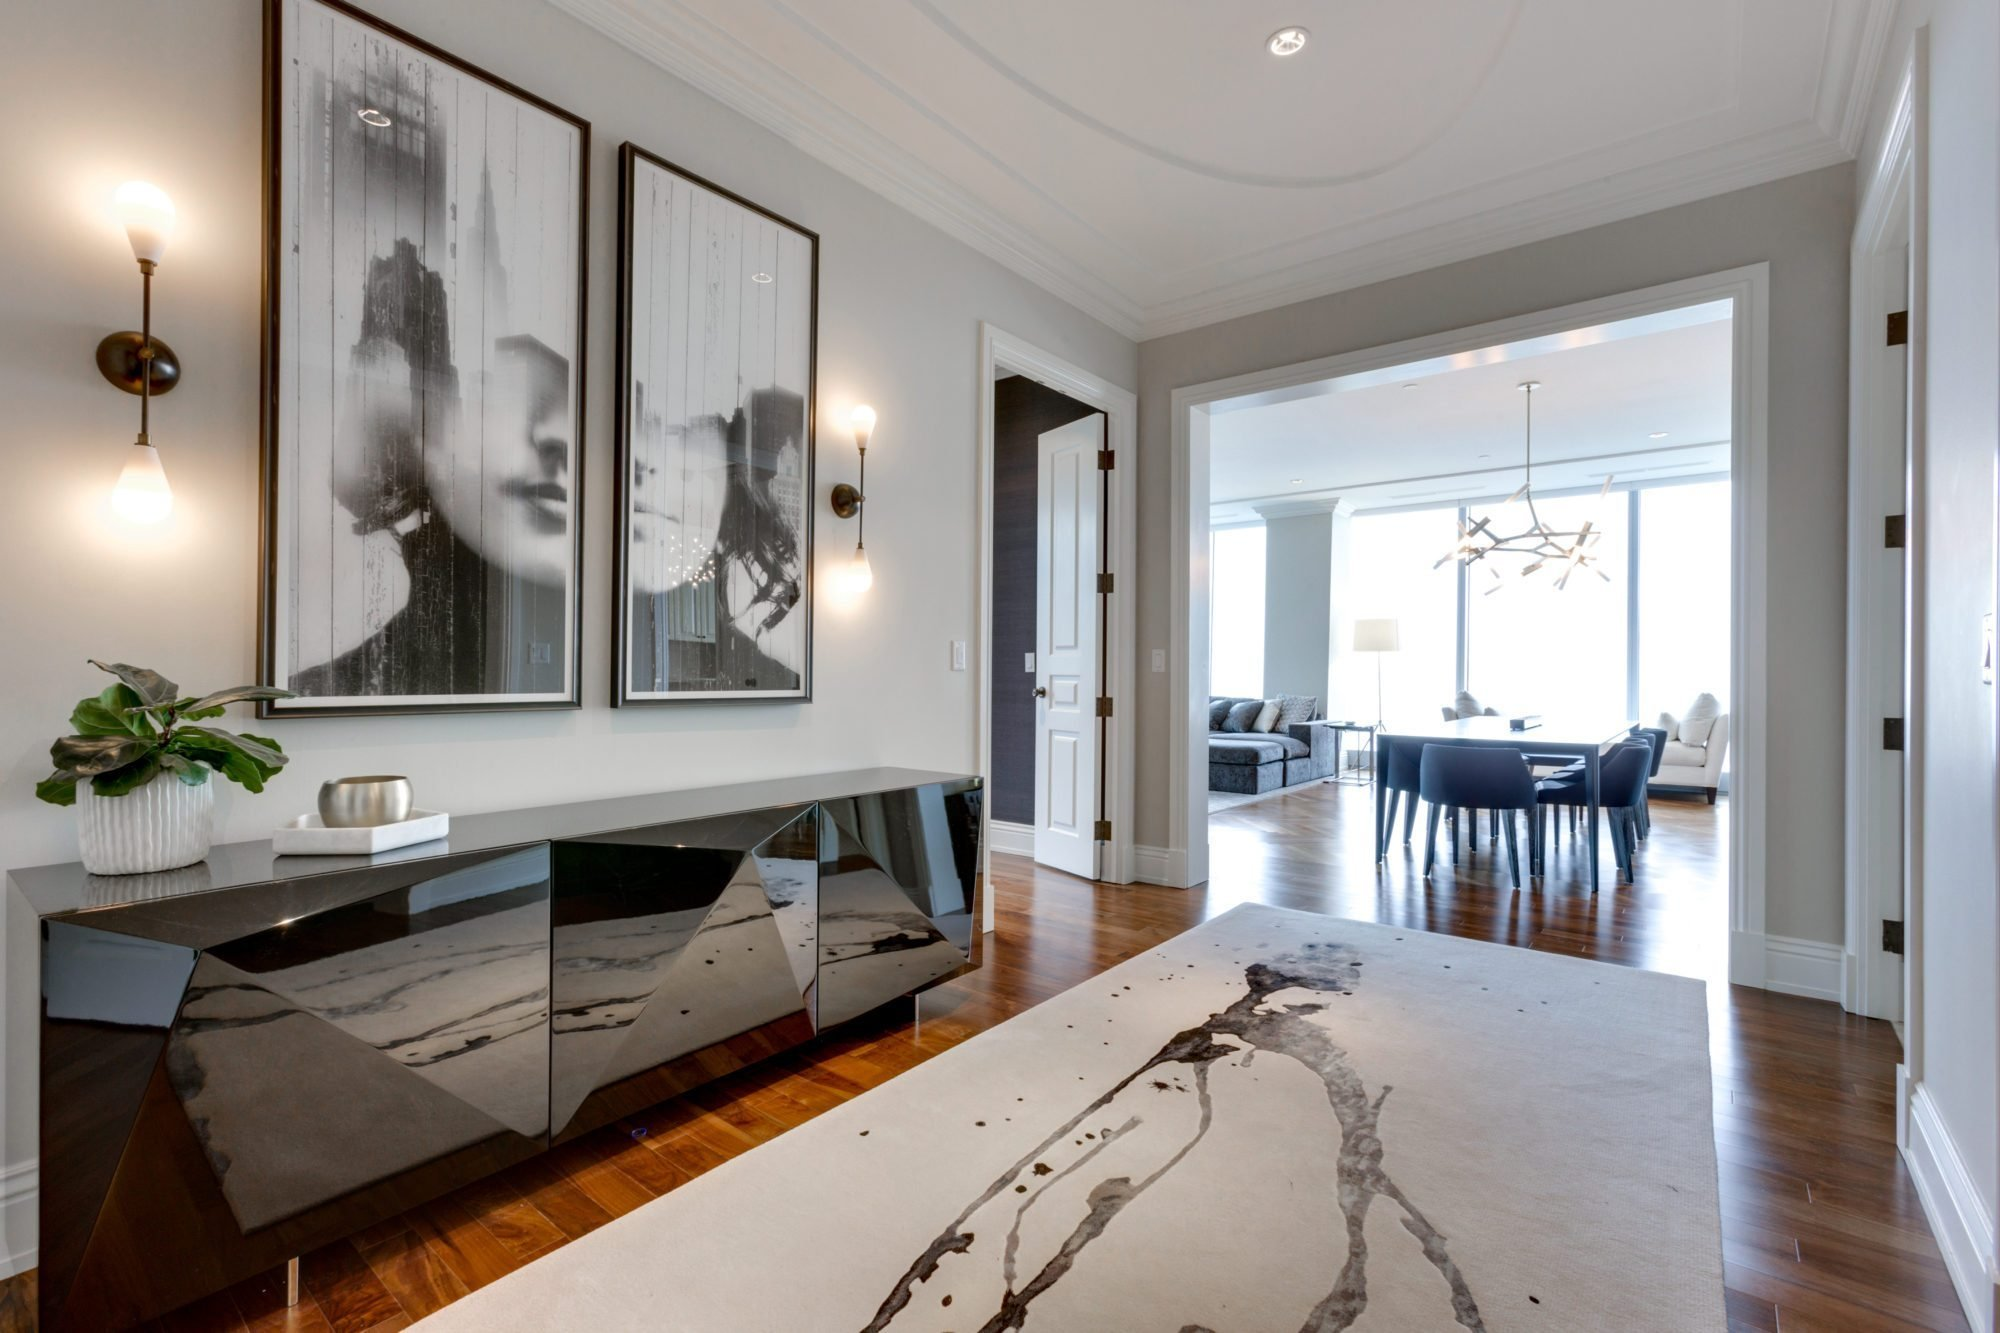 Best 4 Million For A Giant Ritz Carlton Suite With A Cn Tower View With Pictures